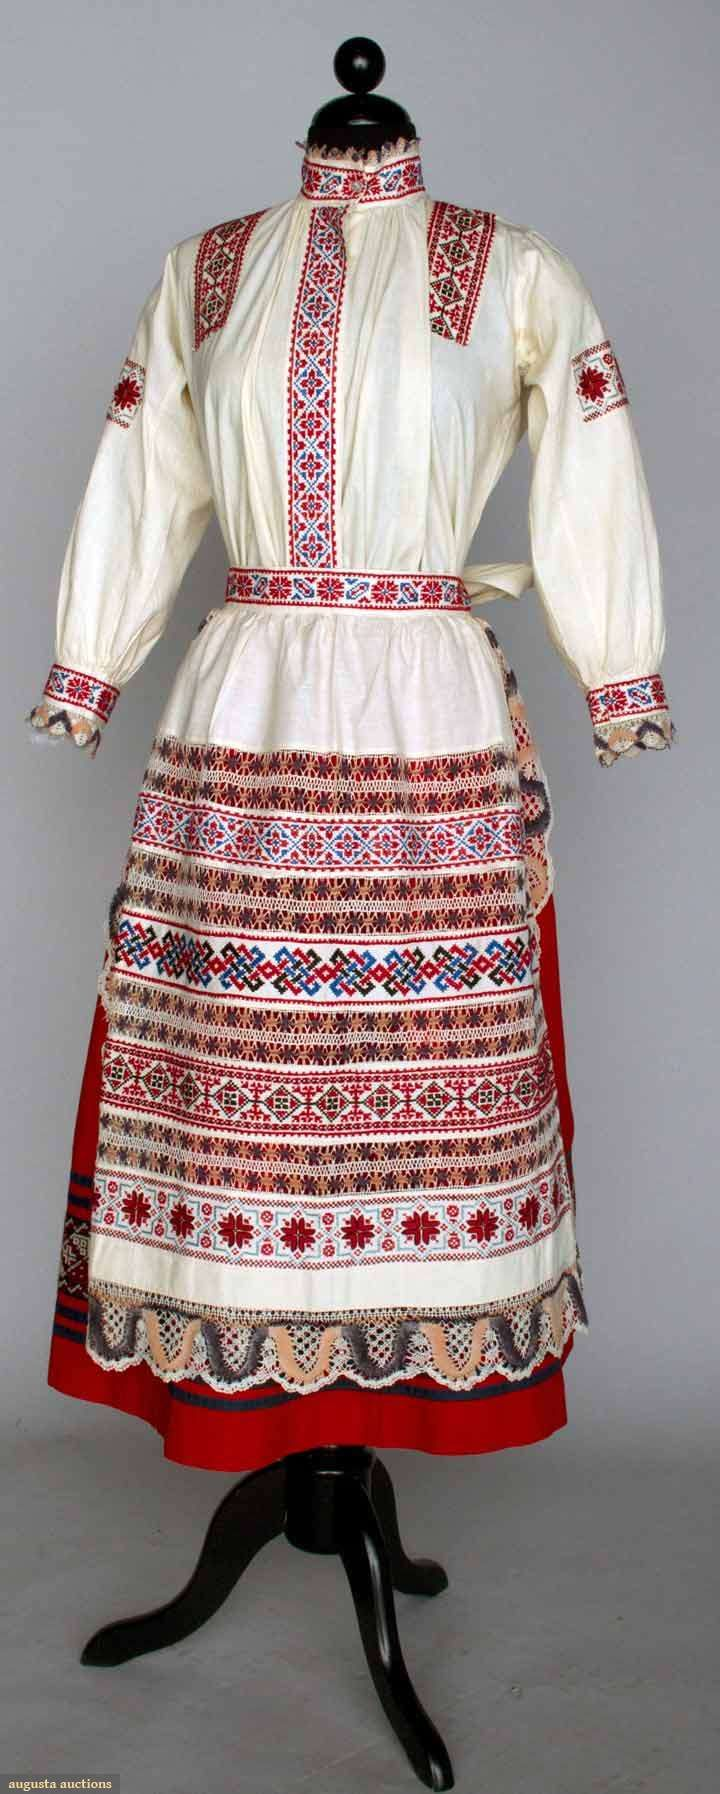 Augusta Auctions: woman's regional dress,white blouse and apron embroidered in red and blue cross stitch- Slovakia, 1920s